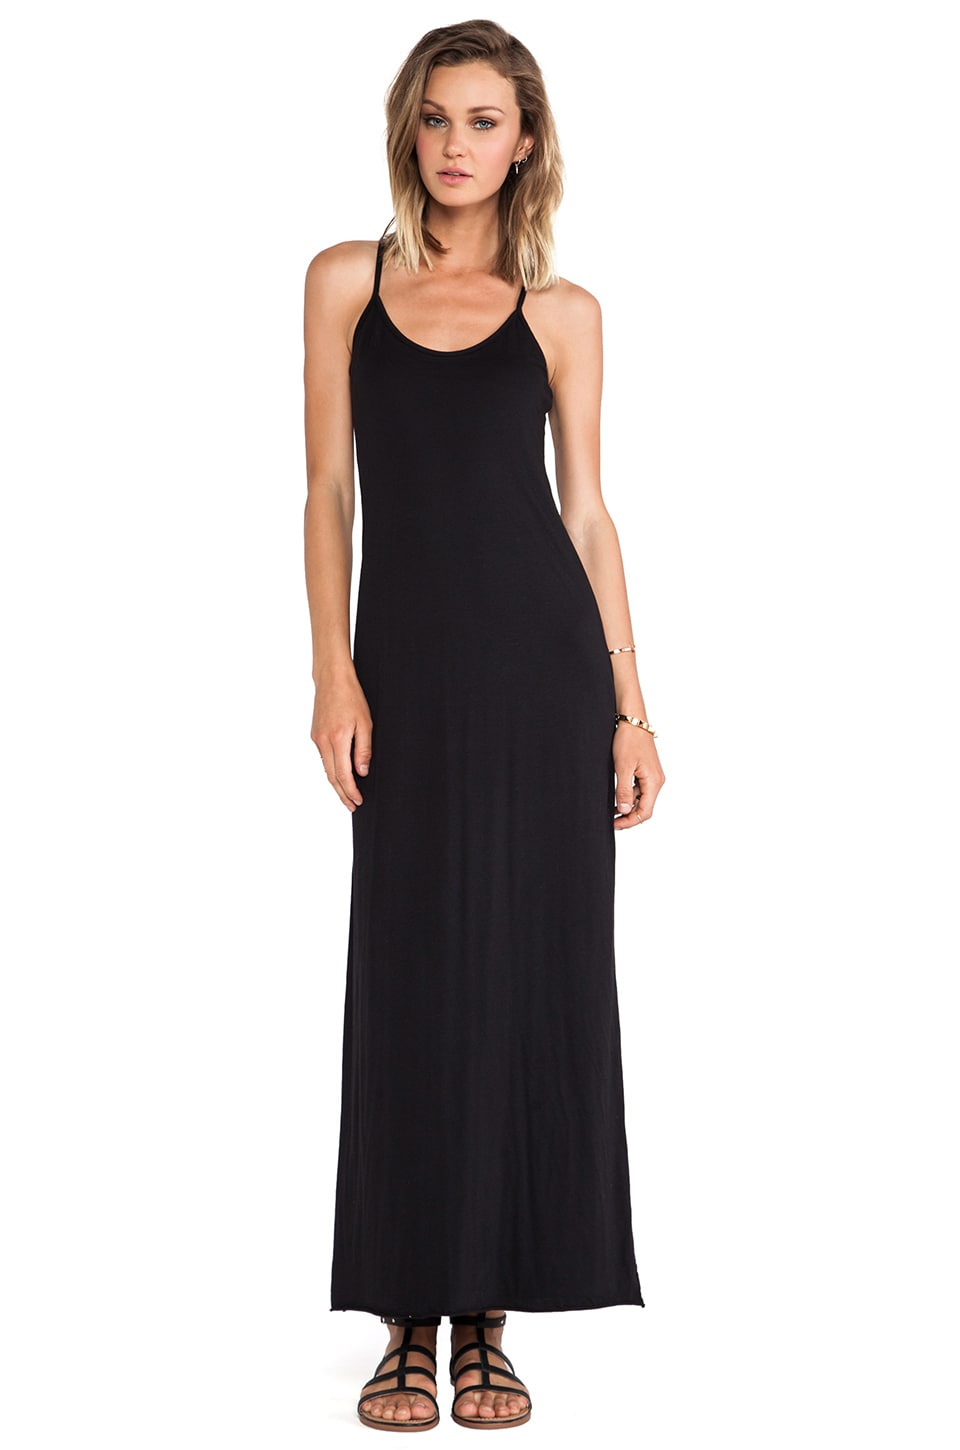 Velvet by Graham & Spencer Nima Gauzy Whisper Dress in Black